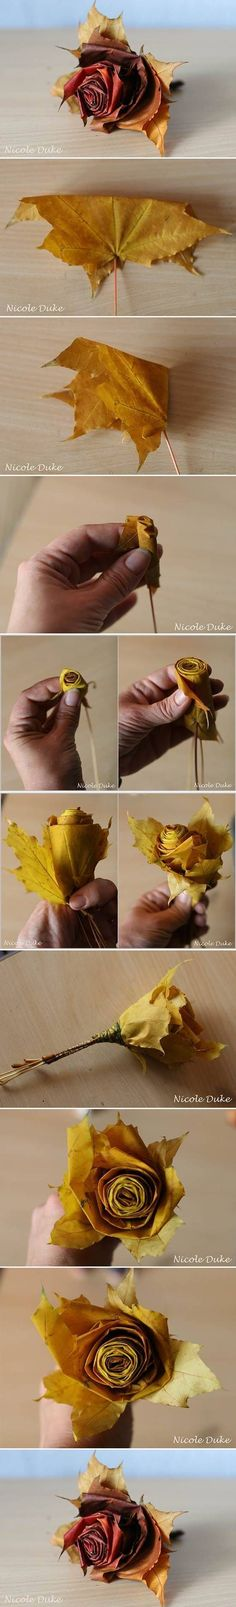 How to Make Beautiful Maple Leaf Rose